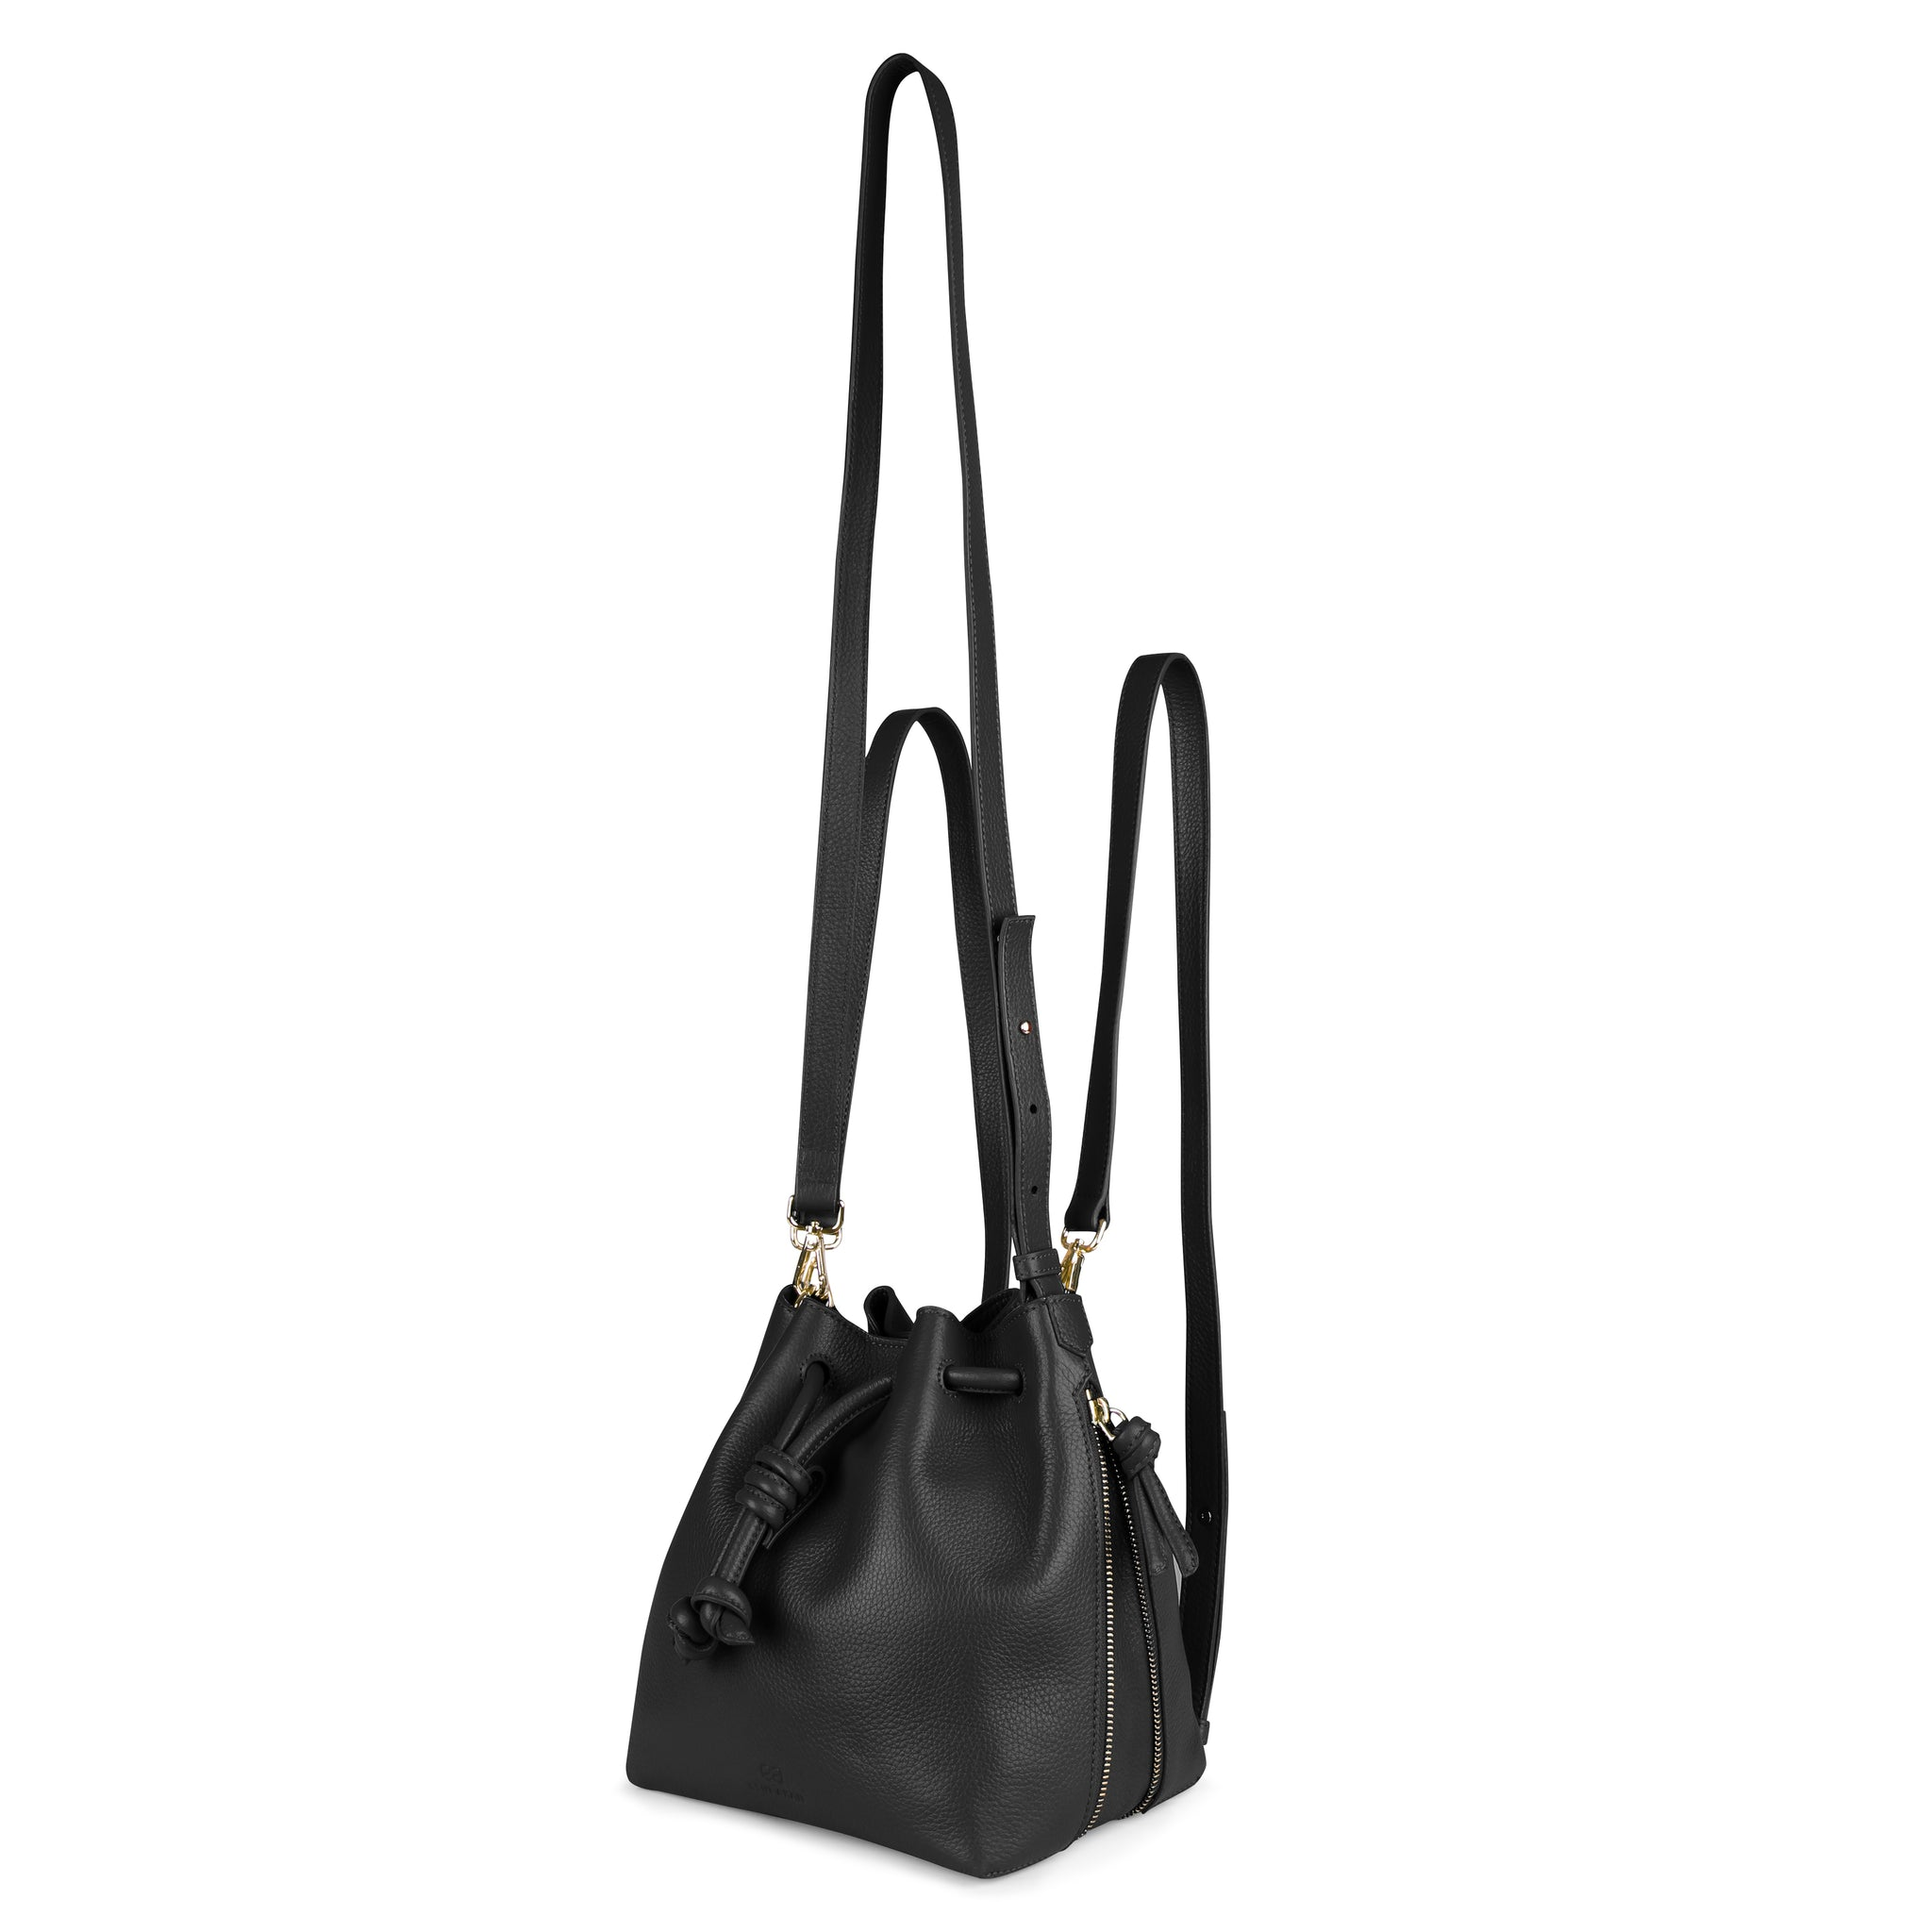 A convertible medium leather black bucket bag that could be used as a backpack, front image.